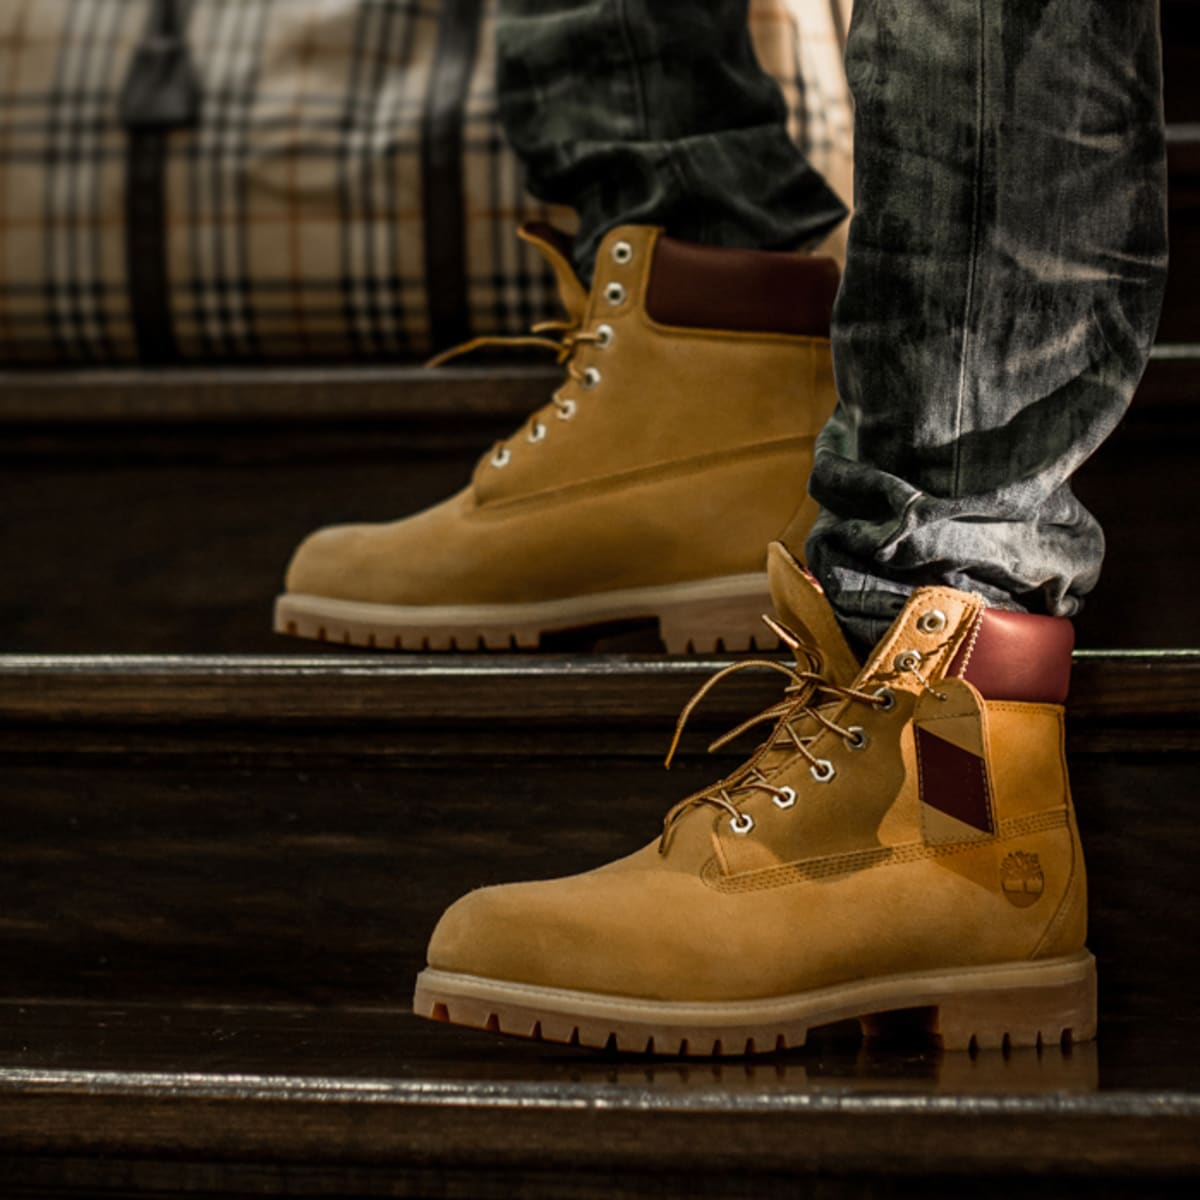 Distribución acre variable  DTLR Partners With Timberland for an Exclusive 6-Inch Boot in Wheat Suede -  Freshness Mag